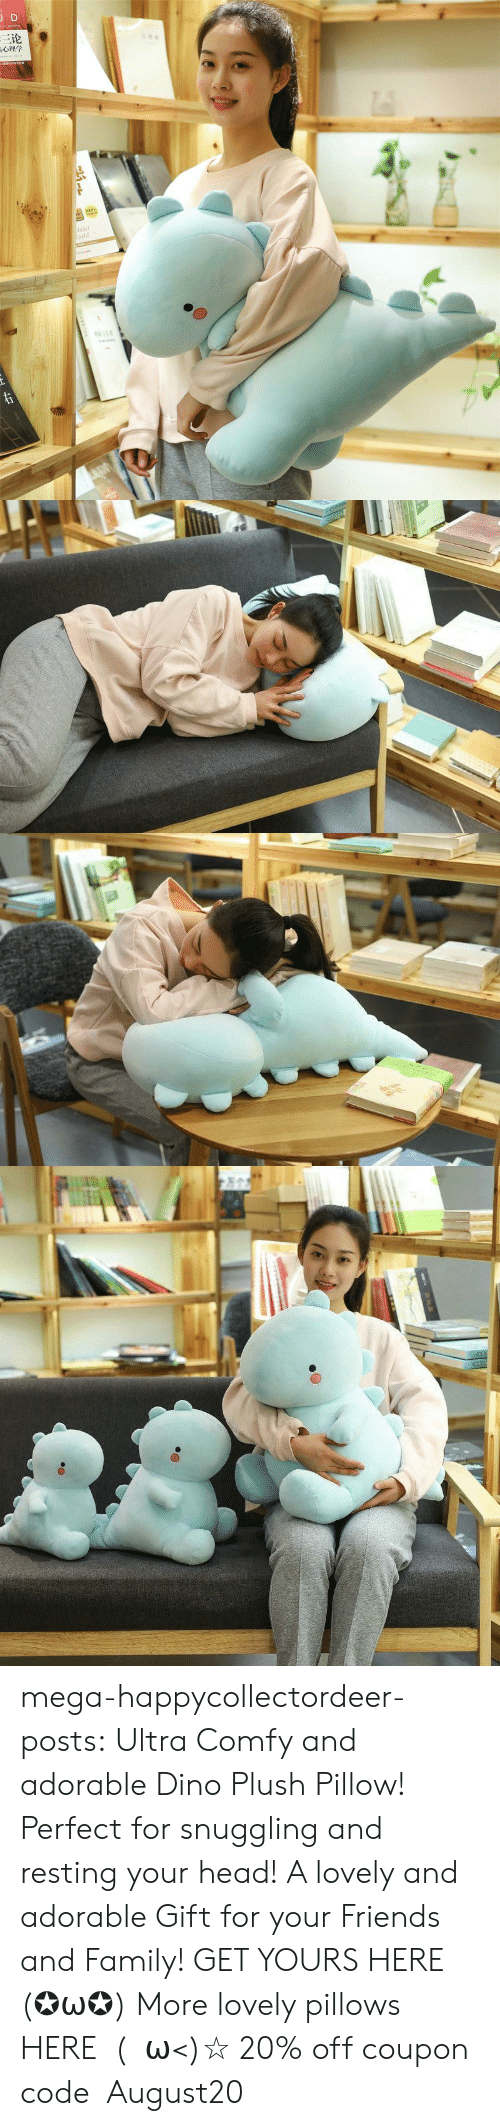 Resting: JD  三论  laint  orld  TDNAR  ww.e mega-happycollectordeer-posts:  Ultra Comfy and adorable Dino Plush Pillow! Perfect for snuggling and resting your head! A lovely and adorable Gift for your Friends and Family! GET YOURS HERE (✪ω✪) More lovely pillows HERE (・ω<)☆ 20% off coupon code:August20